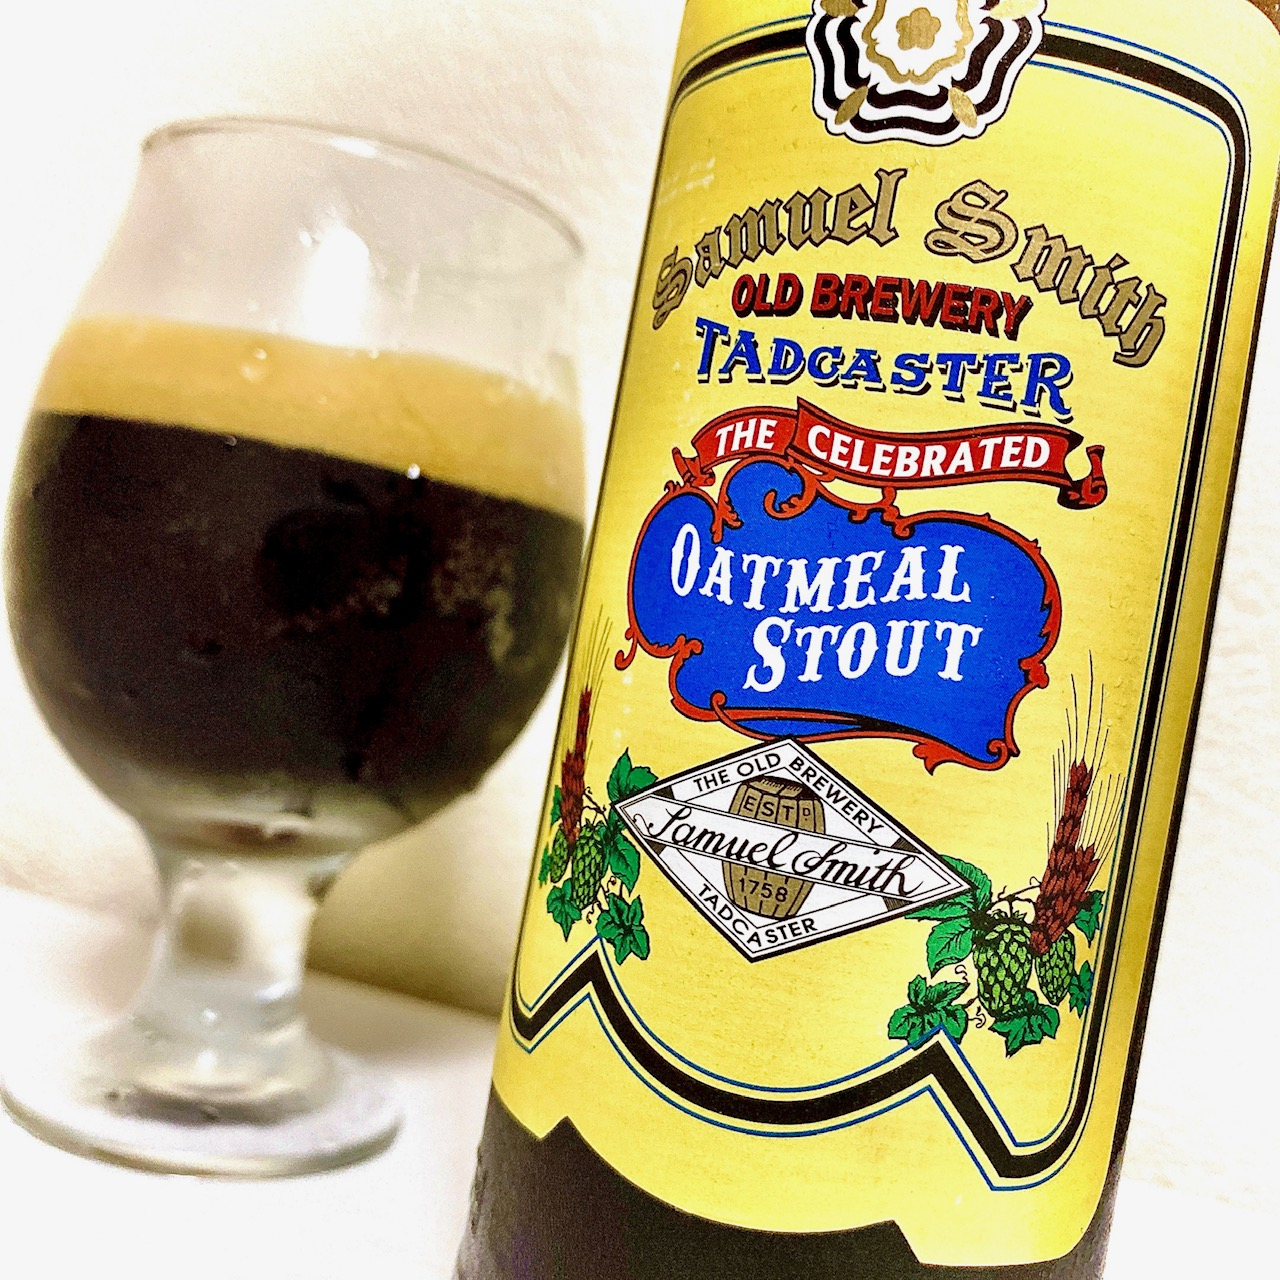 Samuel Smith Old Brewery「Samuel Smith's Oatmeal Stout」